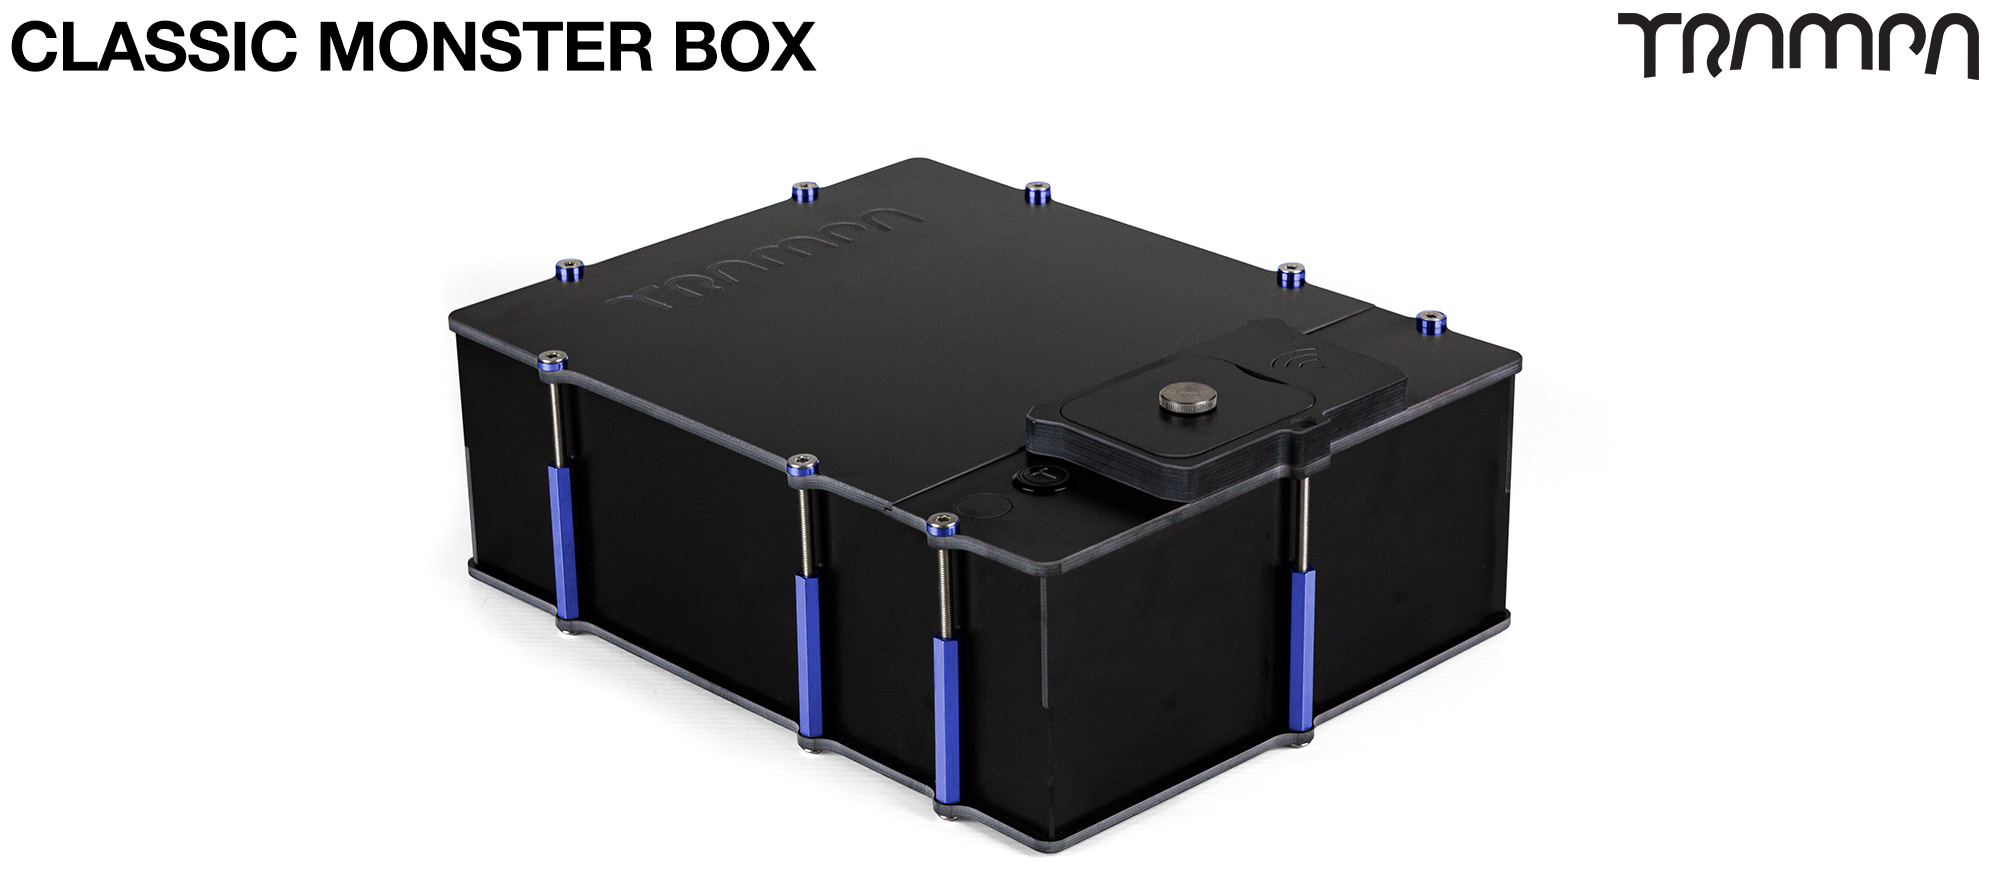 Classic MONSTER Box MkIV - Fits 18650 Cell Pack 12s7p 21A or upto 2x22000 mAh Lipos & panel options to fit any of the TRAMPA VESC Speed controllers internally!!